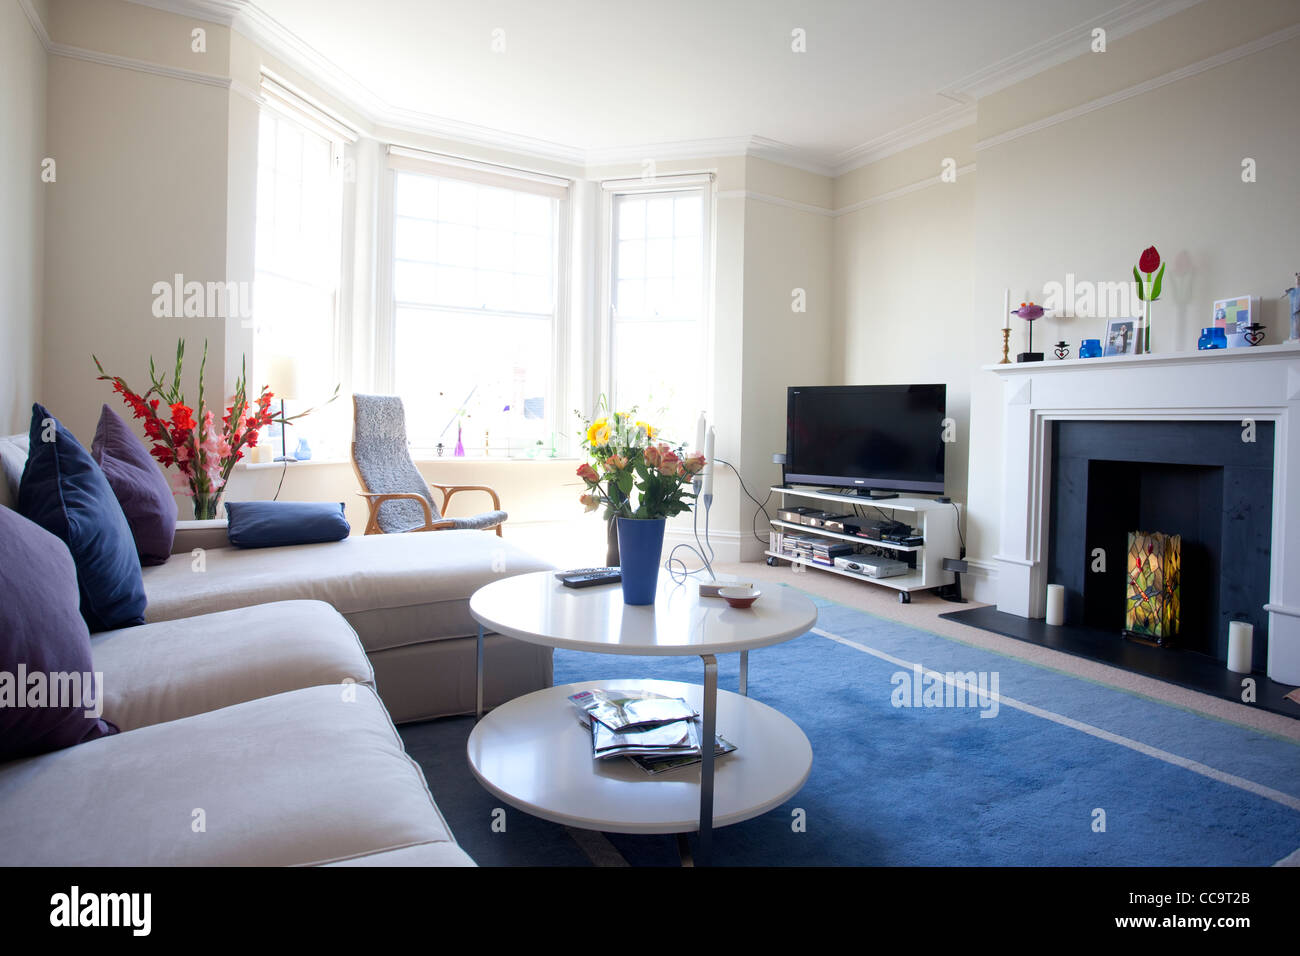 Appartement living room géorgienne, Hammersmith, Londres, UK Photo Stock